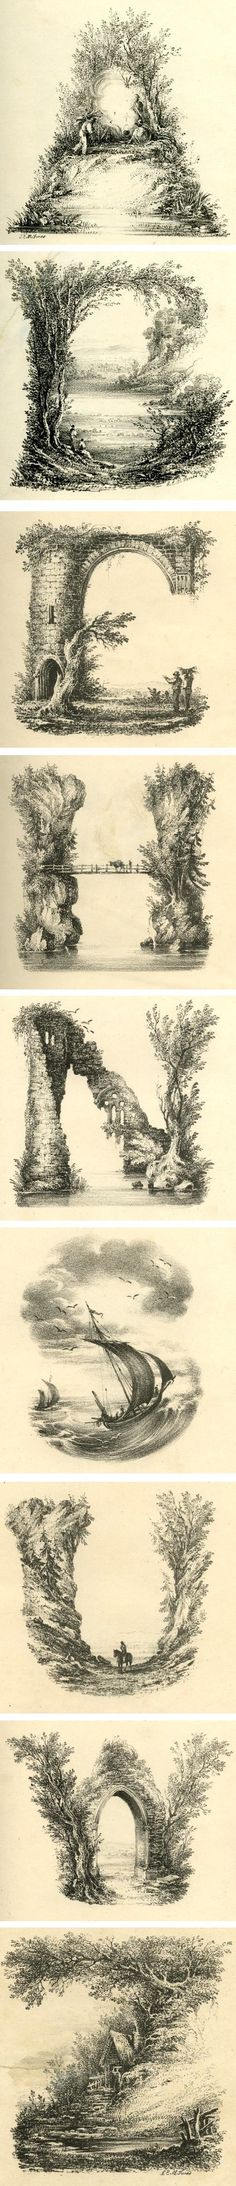 Landscape alphabet, L.E.M. Jones - lines and colors :: a blog about drawing, painting, illustration, comics, concept art and other visual ar...